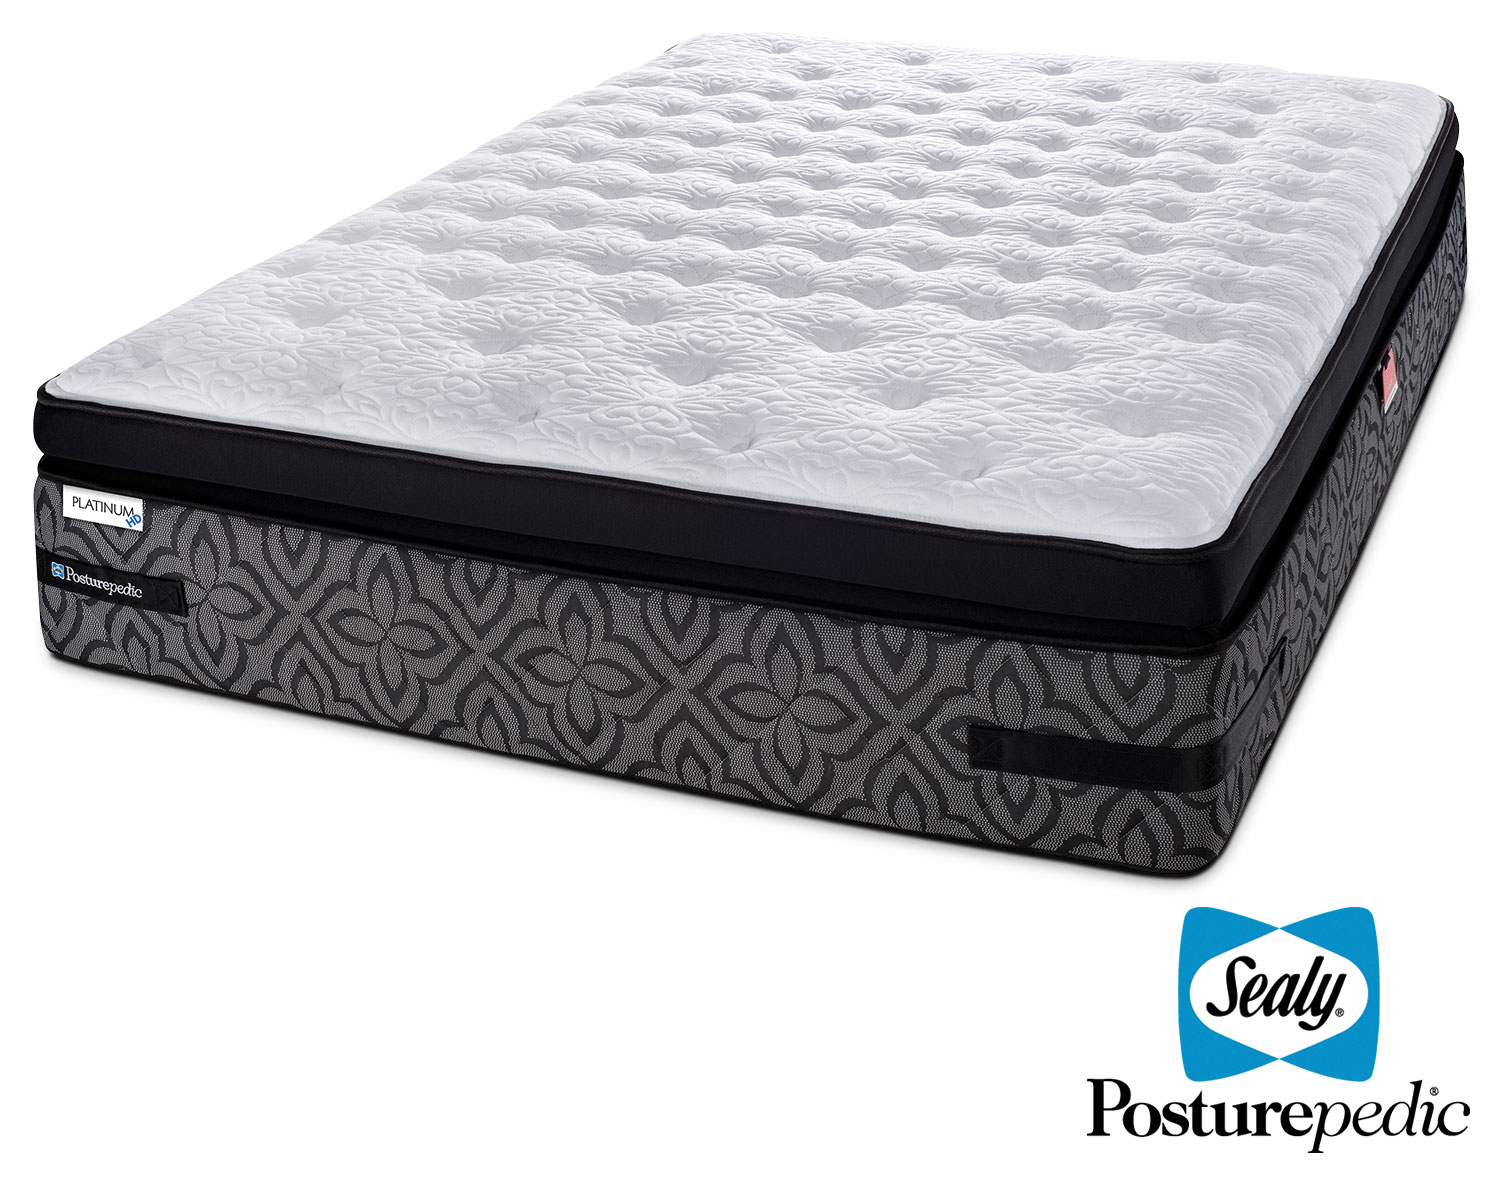 Sealy Posturepedic 3 K Cushion Firm King Mattress